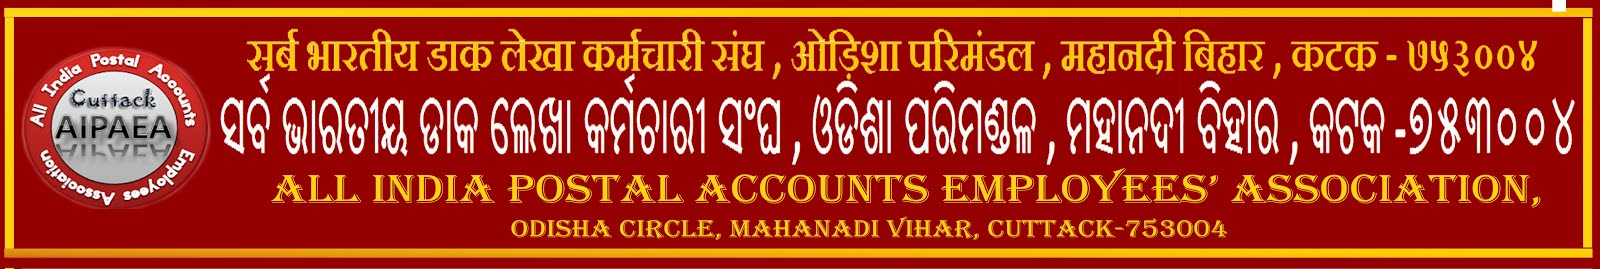 ||* ALL INDIA POSTAL ACCOUNTS EMPLOYEES ASSOCIATION , ODISHA CIRCLE CUTTACK *||